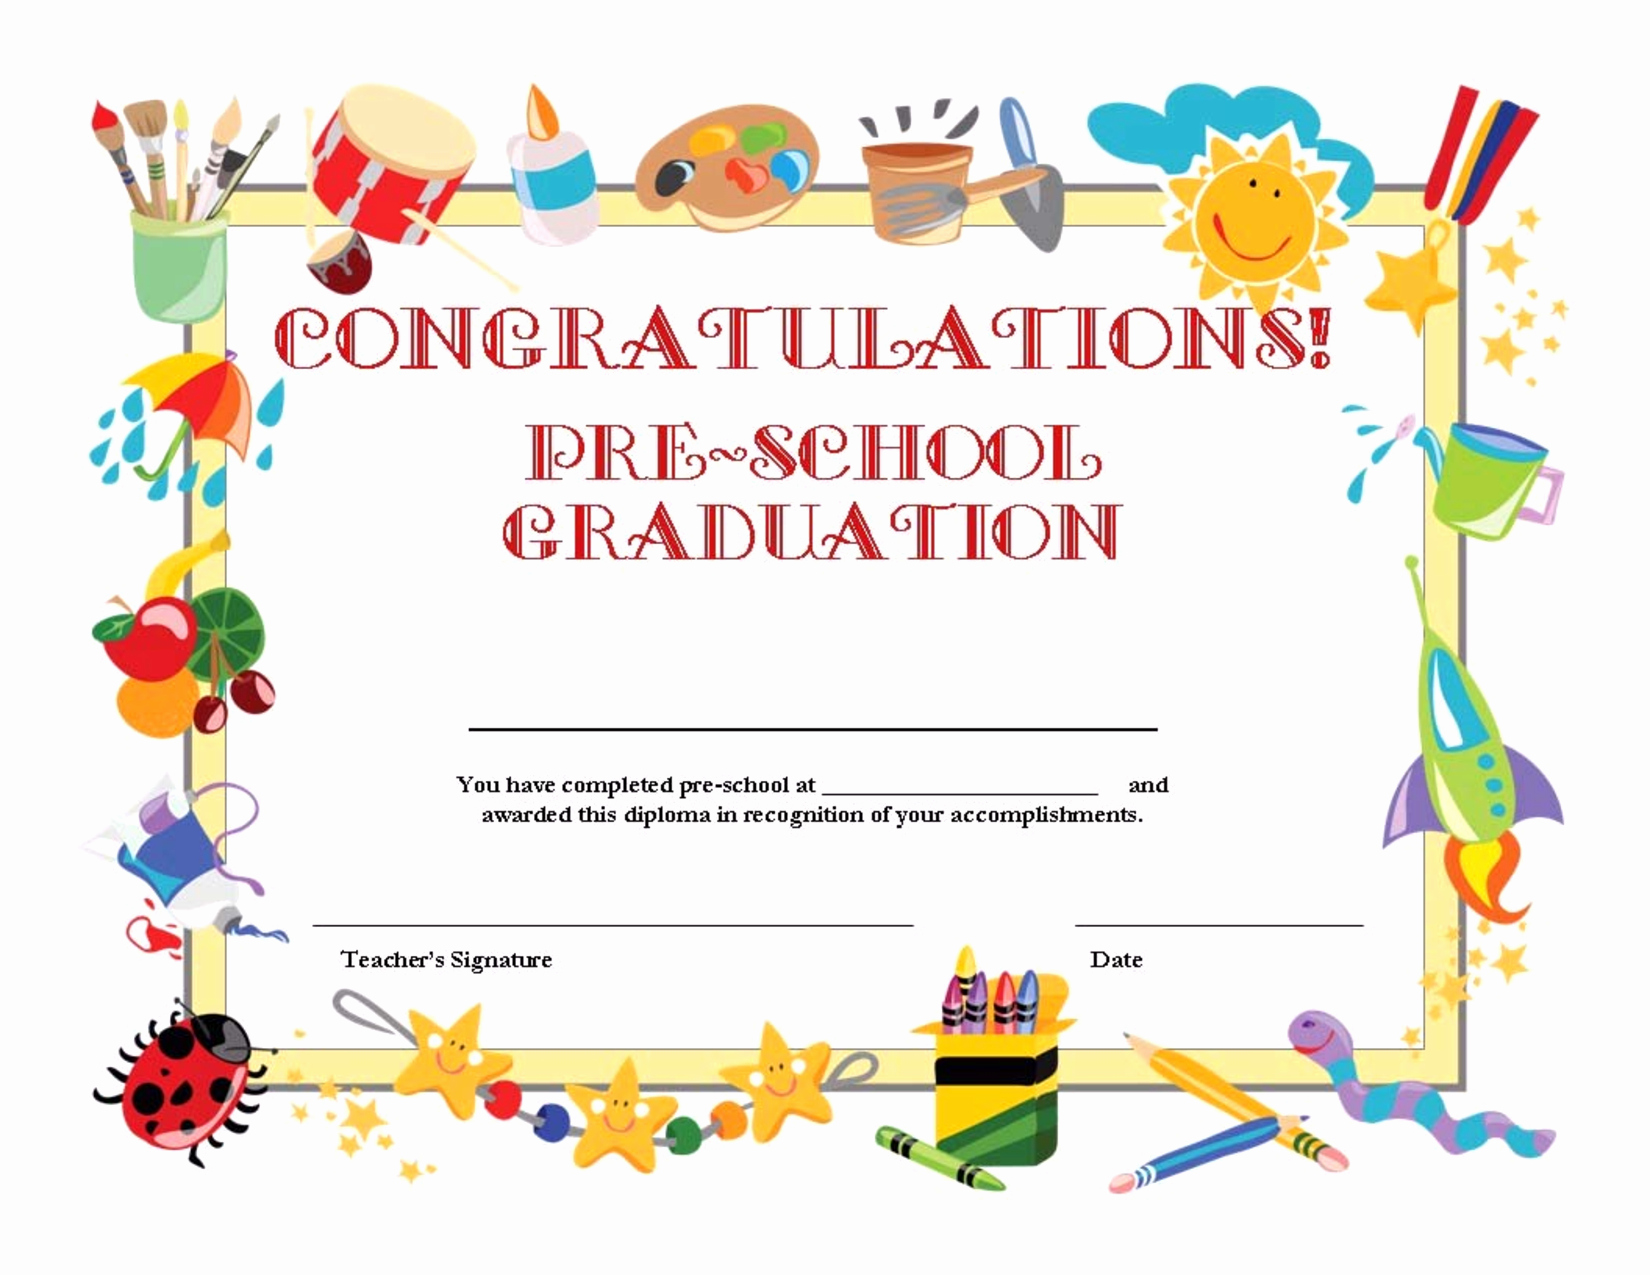 Junior Achievement Certificate Of Achievement Template Inspirational Preschool Graduation Certificate Template Free